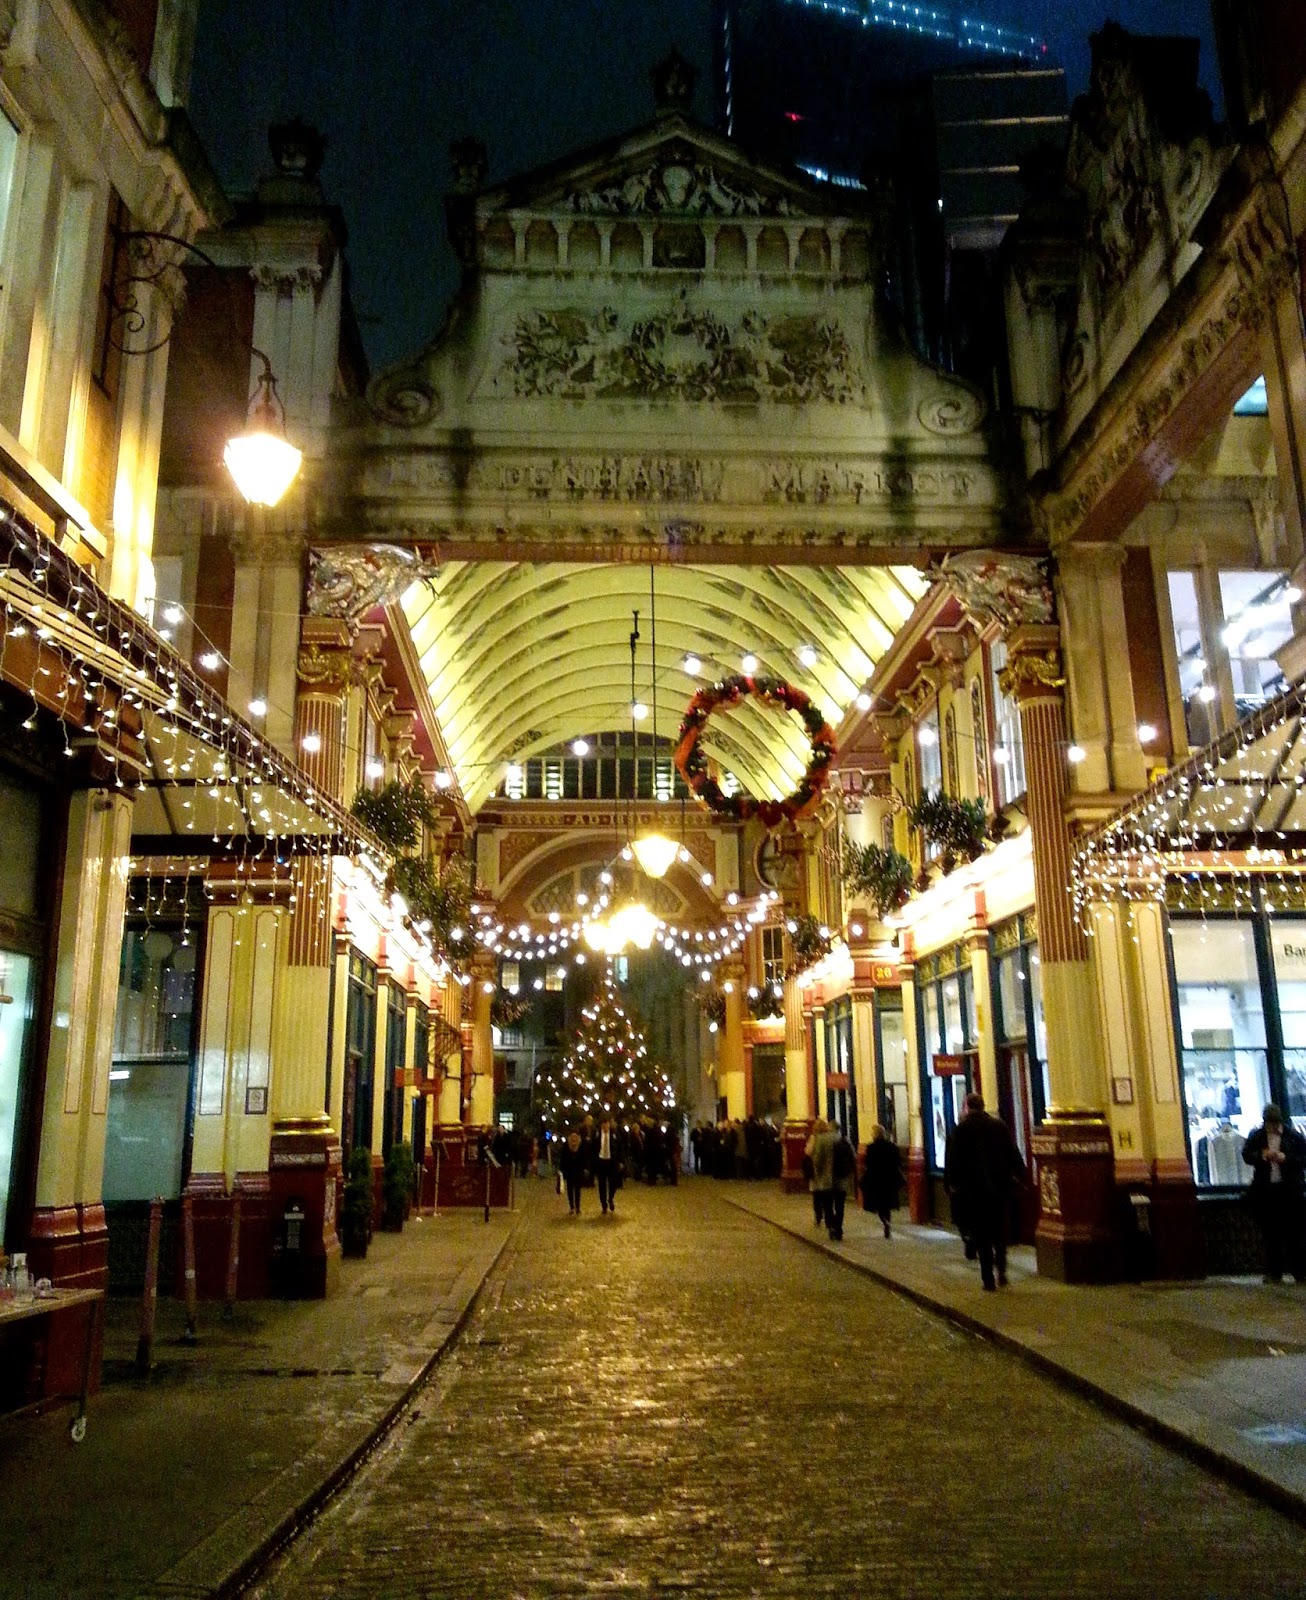 Spend time in the markets (29 Things I Learned in London) @TheBareMidriff